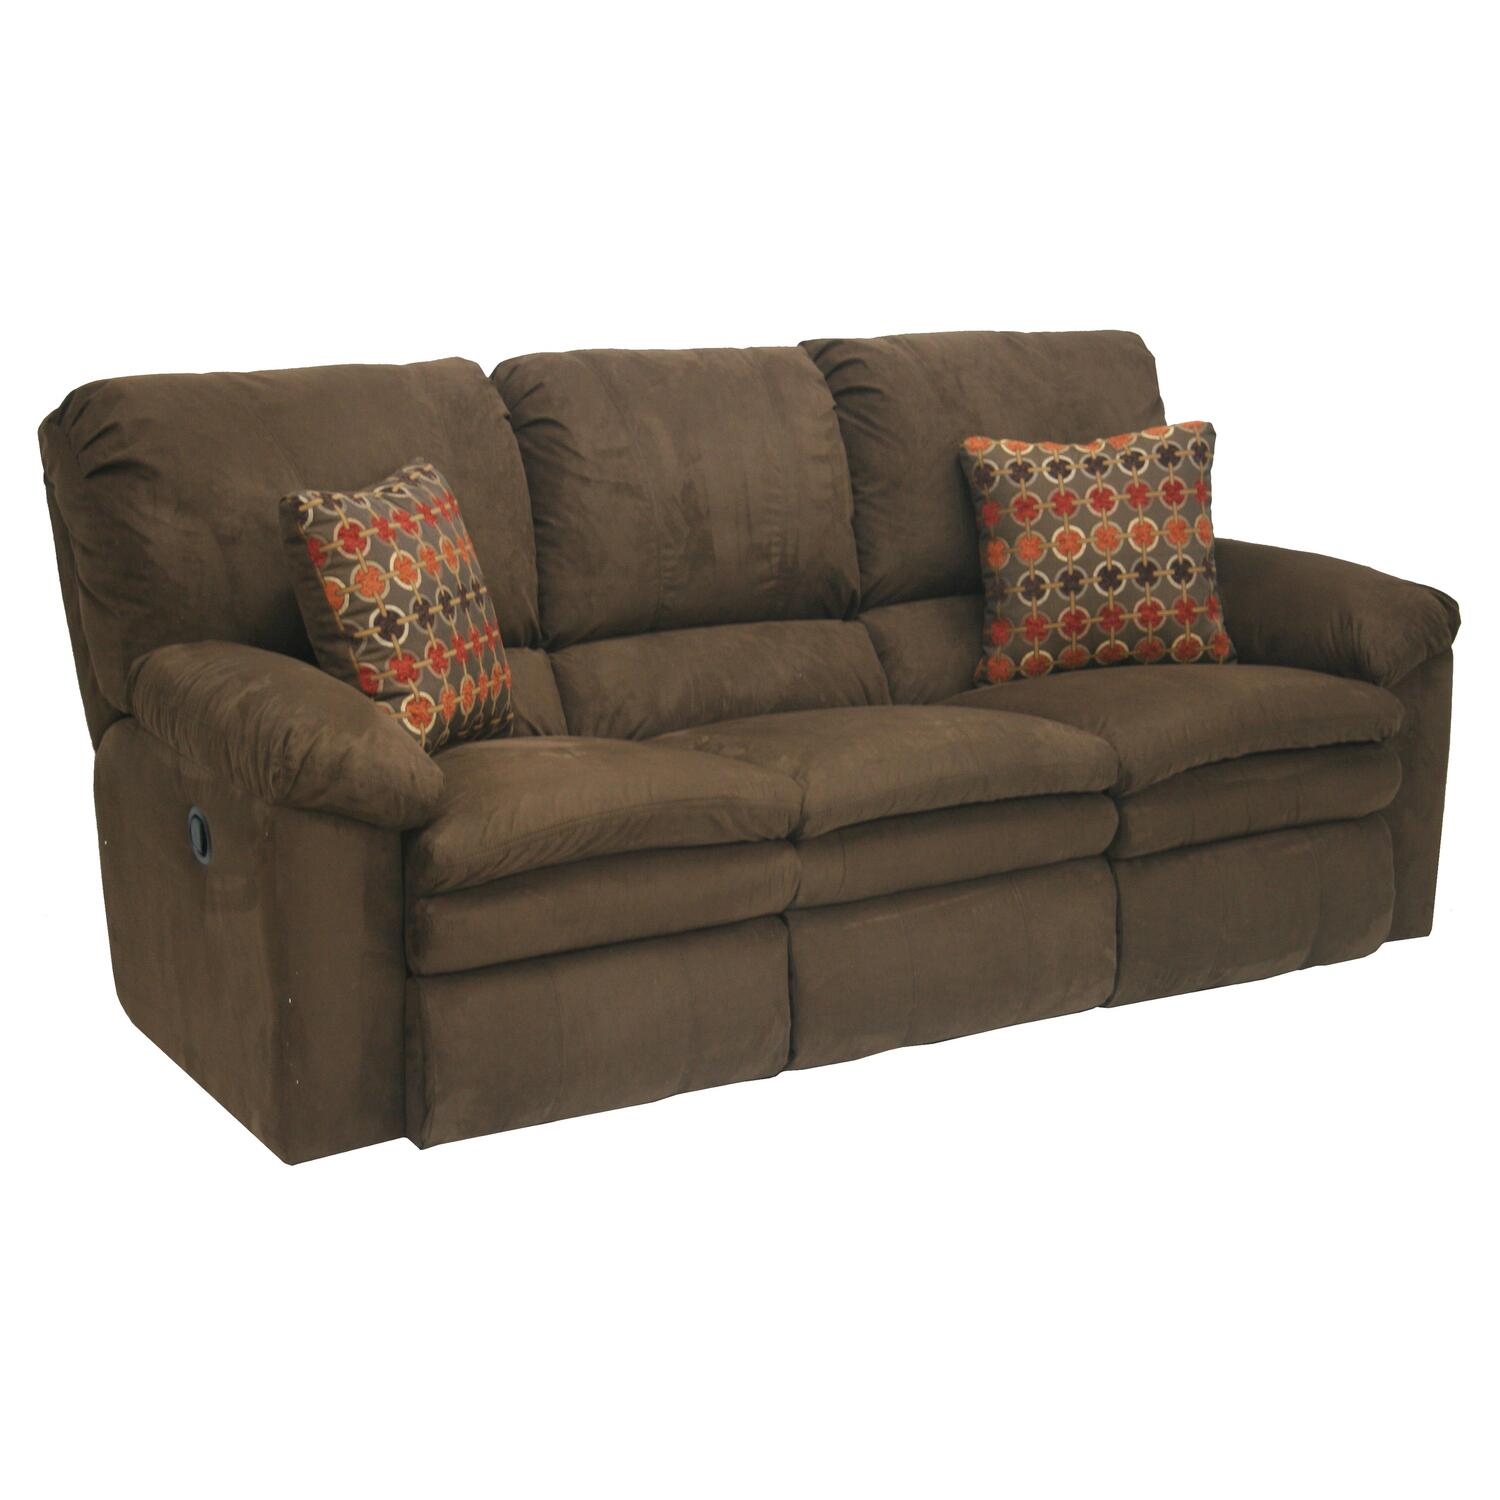 Power recliner sofa Power reclining sofas and loveseats